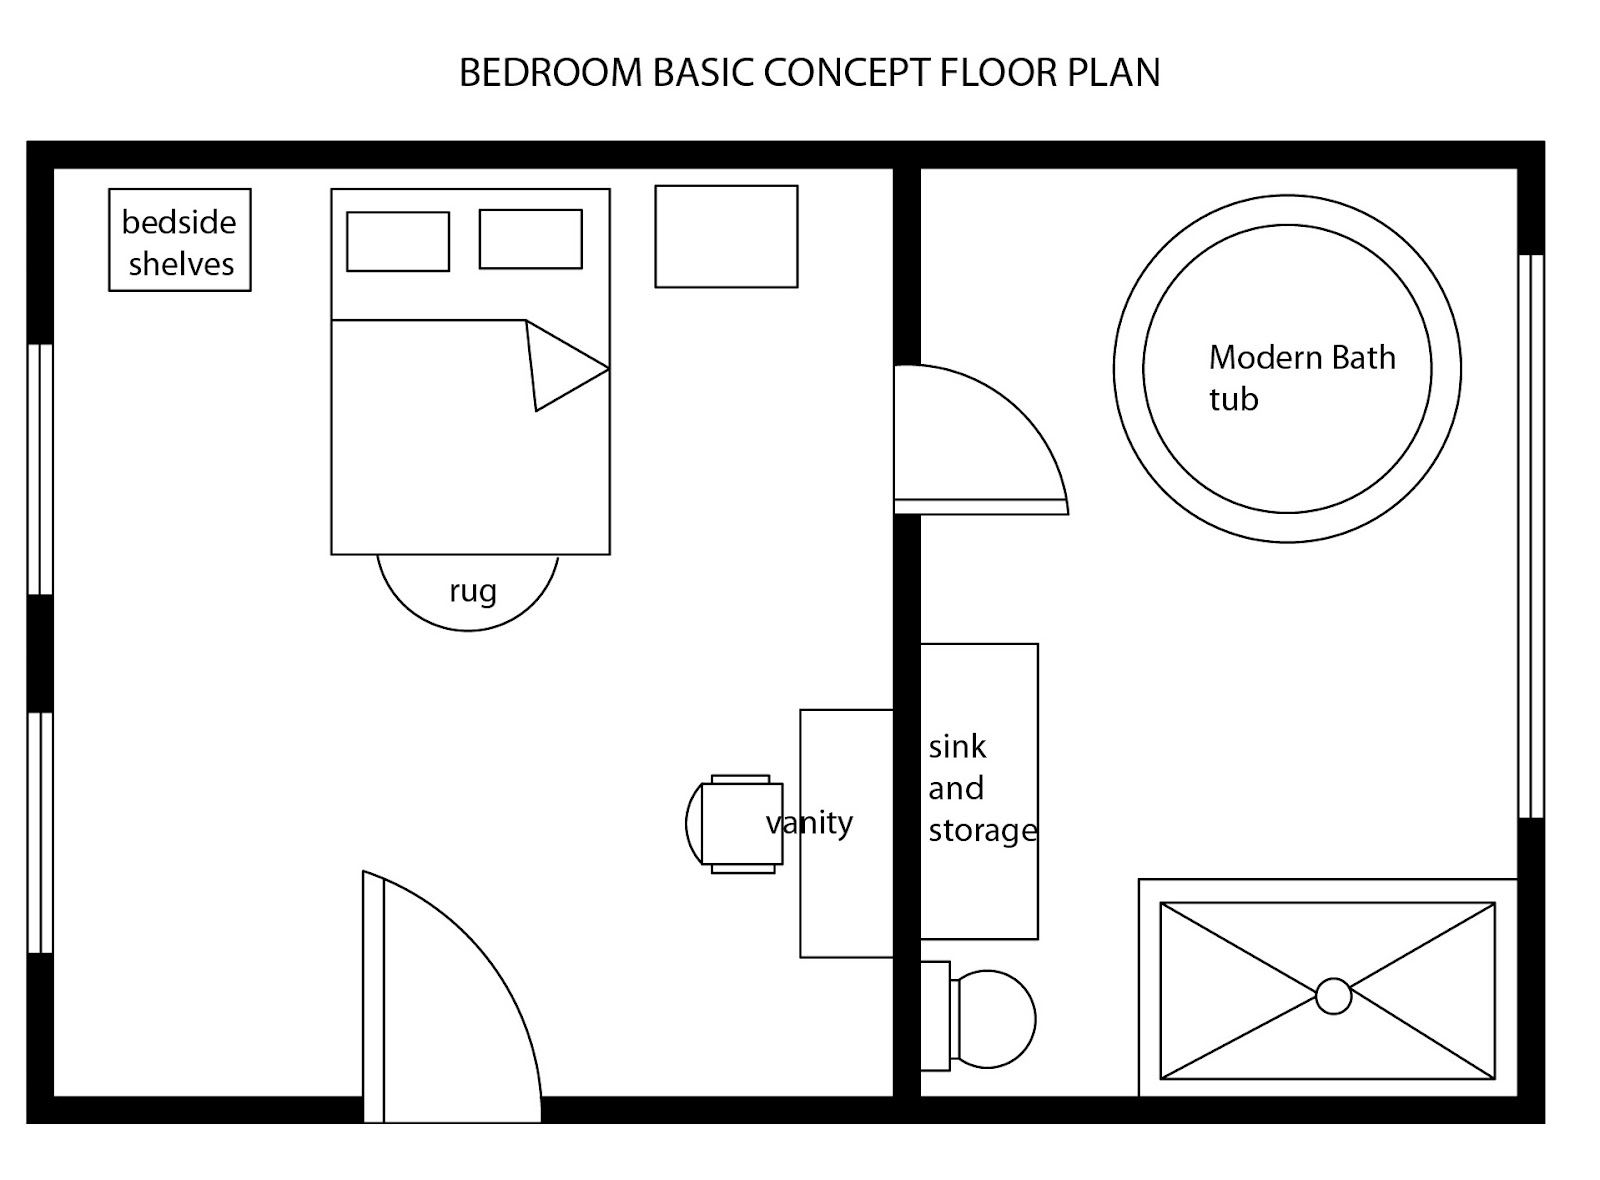 Interior design decor modern bedroom basic floor plan Bedroom furniture layout plan